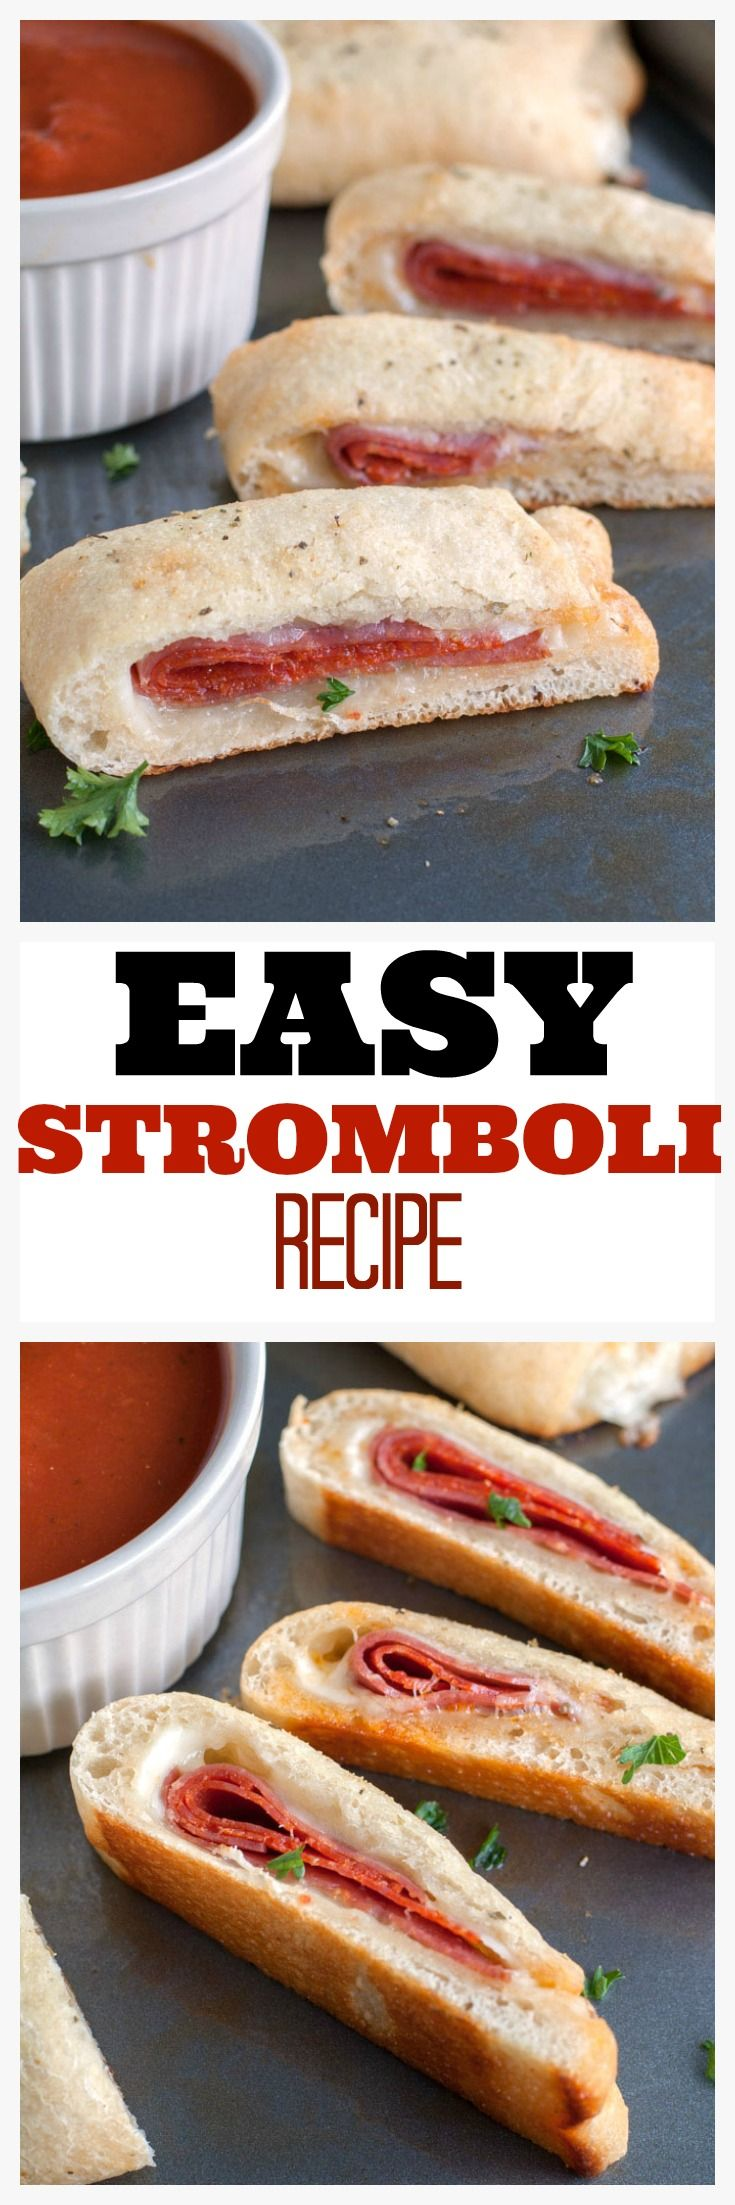 Easy Stromboli Recipe - Pepperoni, salami and provolone wrapped up in pizza dough and topped off with Italian spices. Dip in marinara for a great dinner.